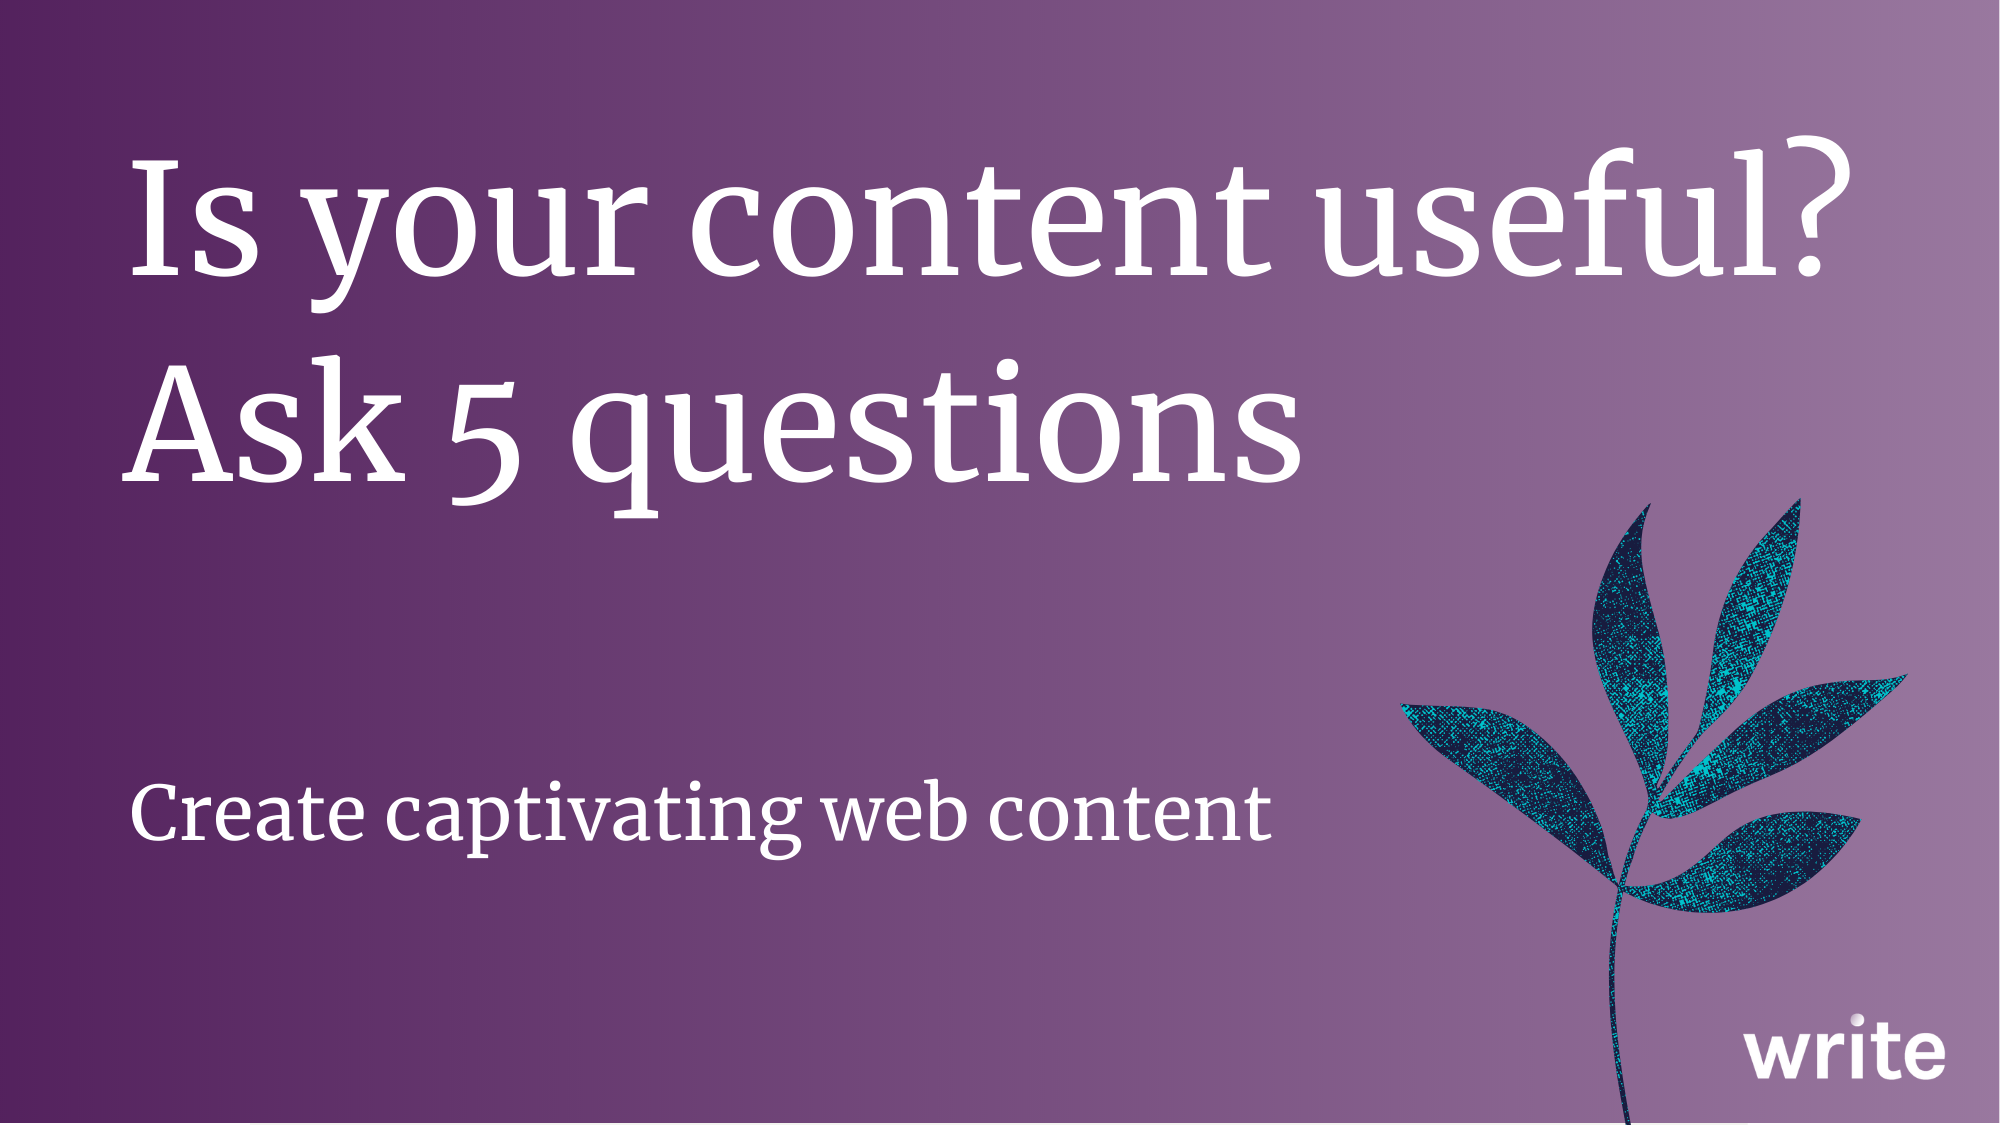 Is your content useful? Ask 5 questions image